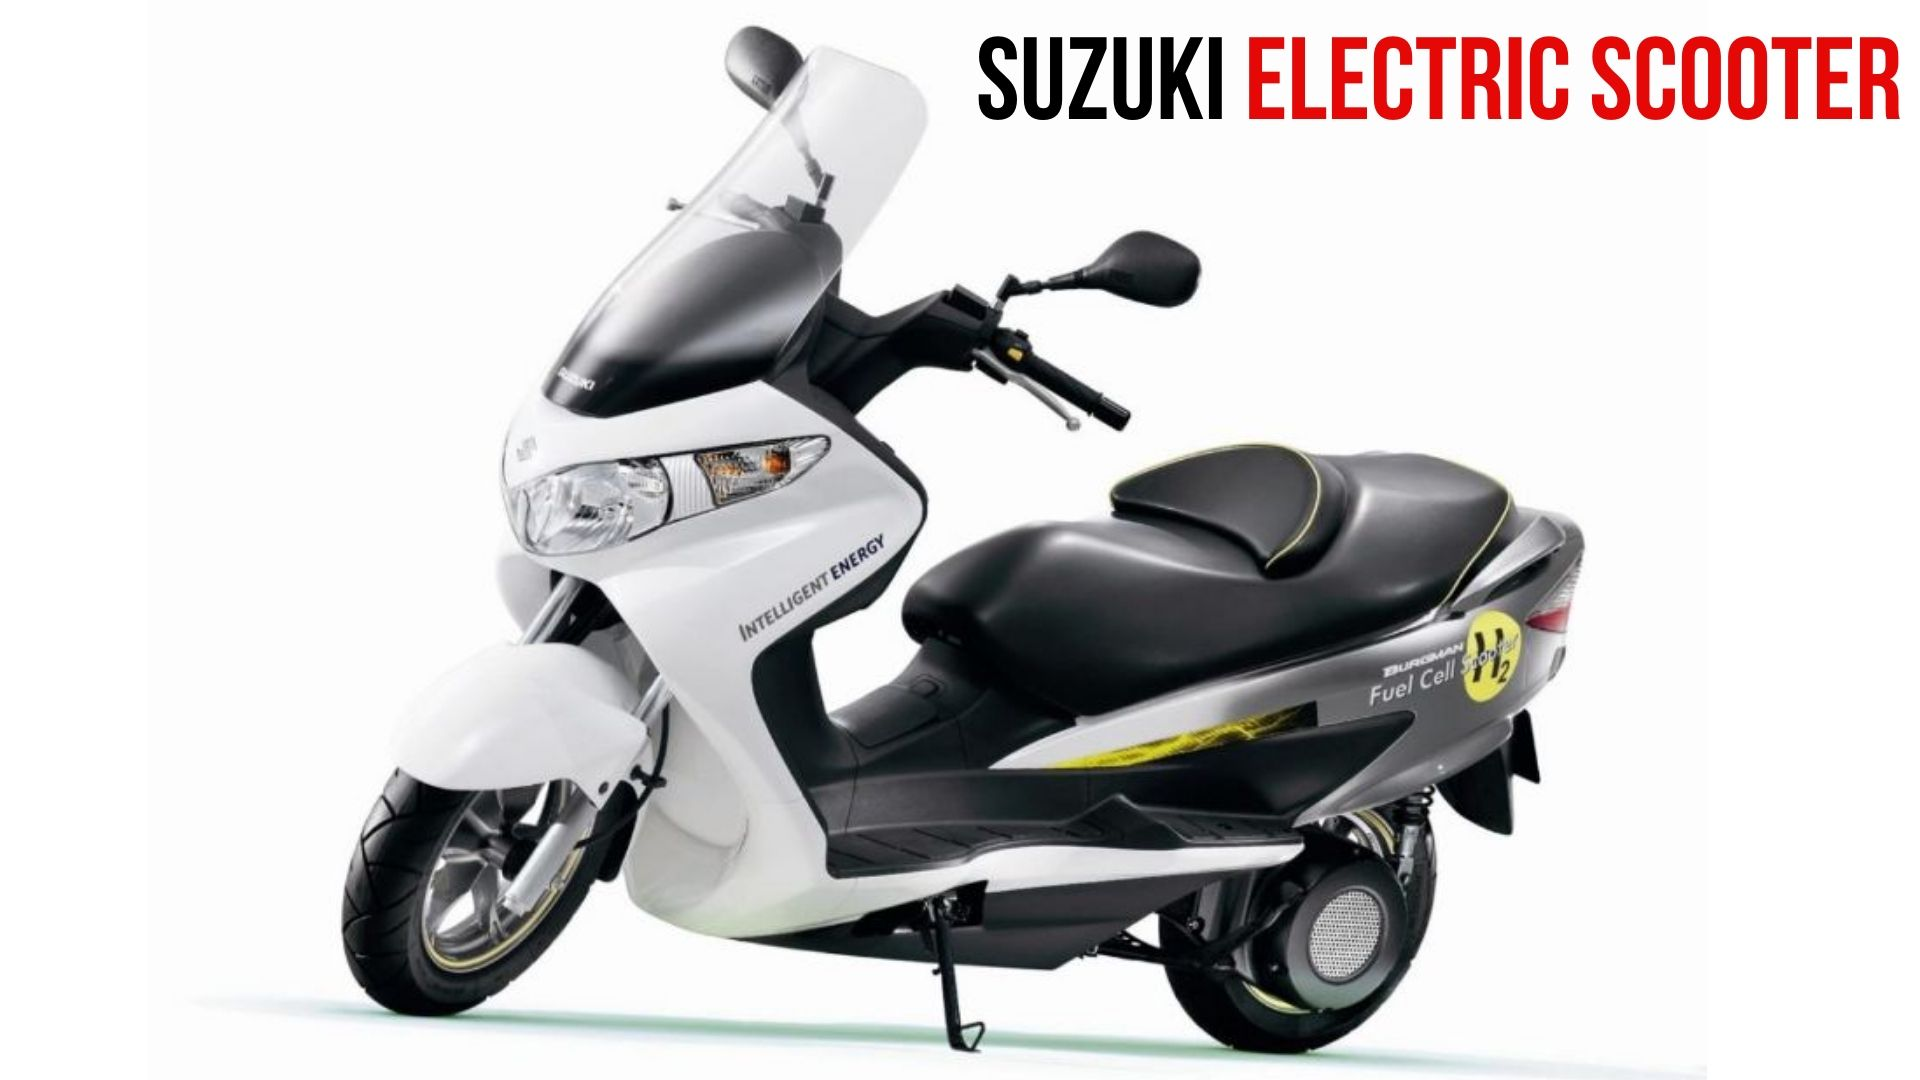 Suzuki Likely To Launch Its First Electric Scooter In India Next Year - GaadiWaadi.com thumbnail